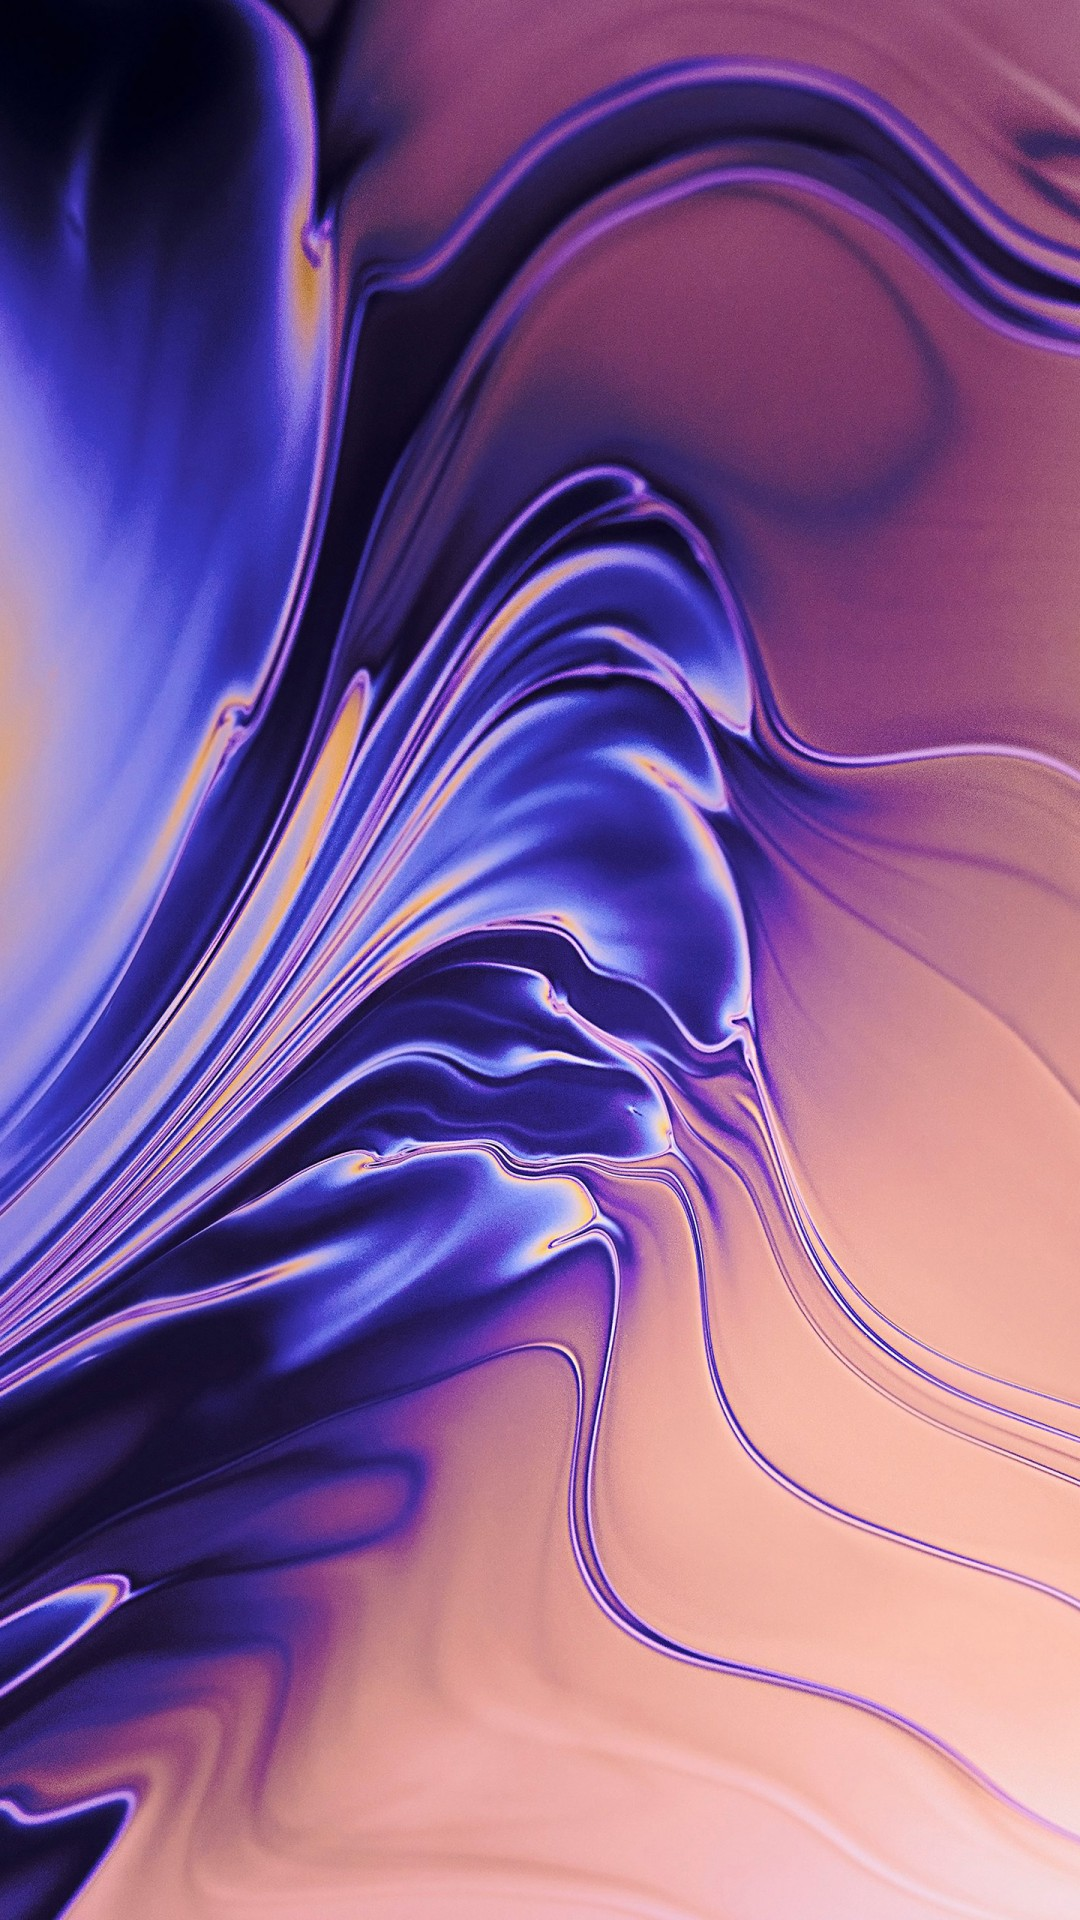 Liquid Live Wallpaper Iphone X Macos Mojave Abstract Stock 5k Wallpapers Hd Wallpapers